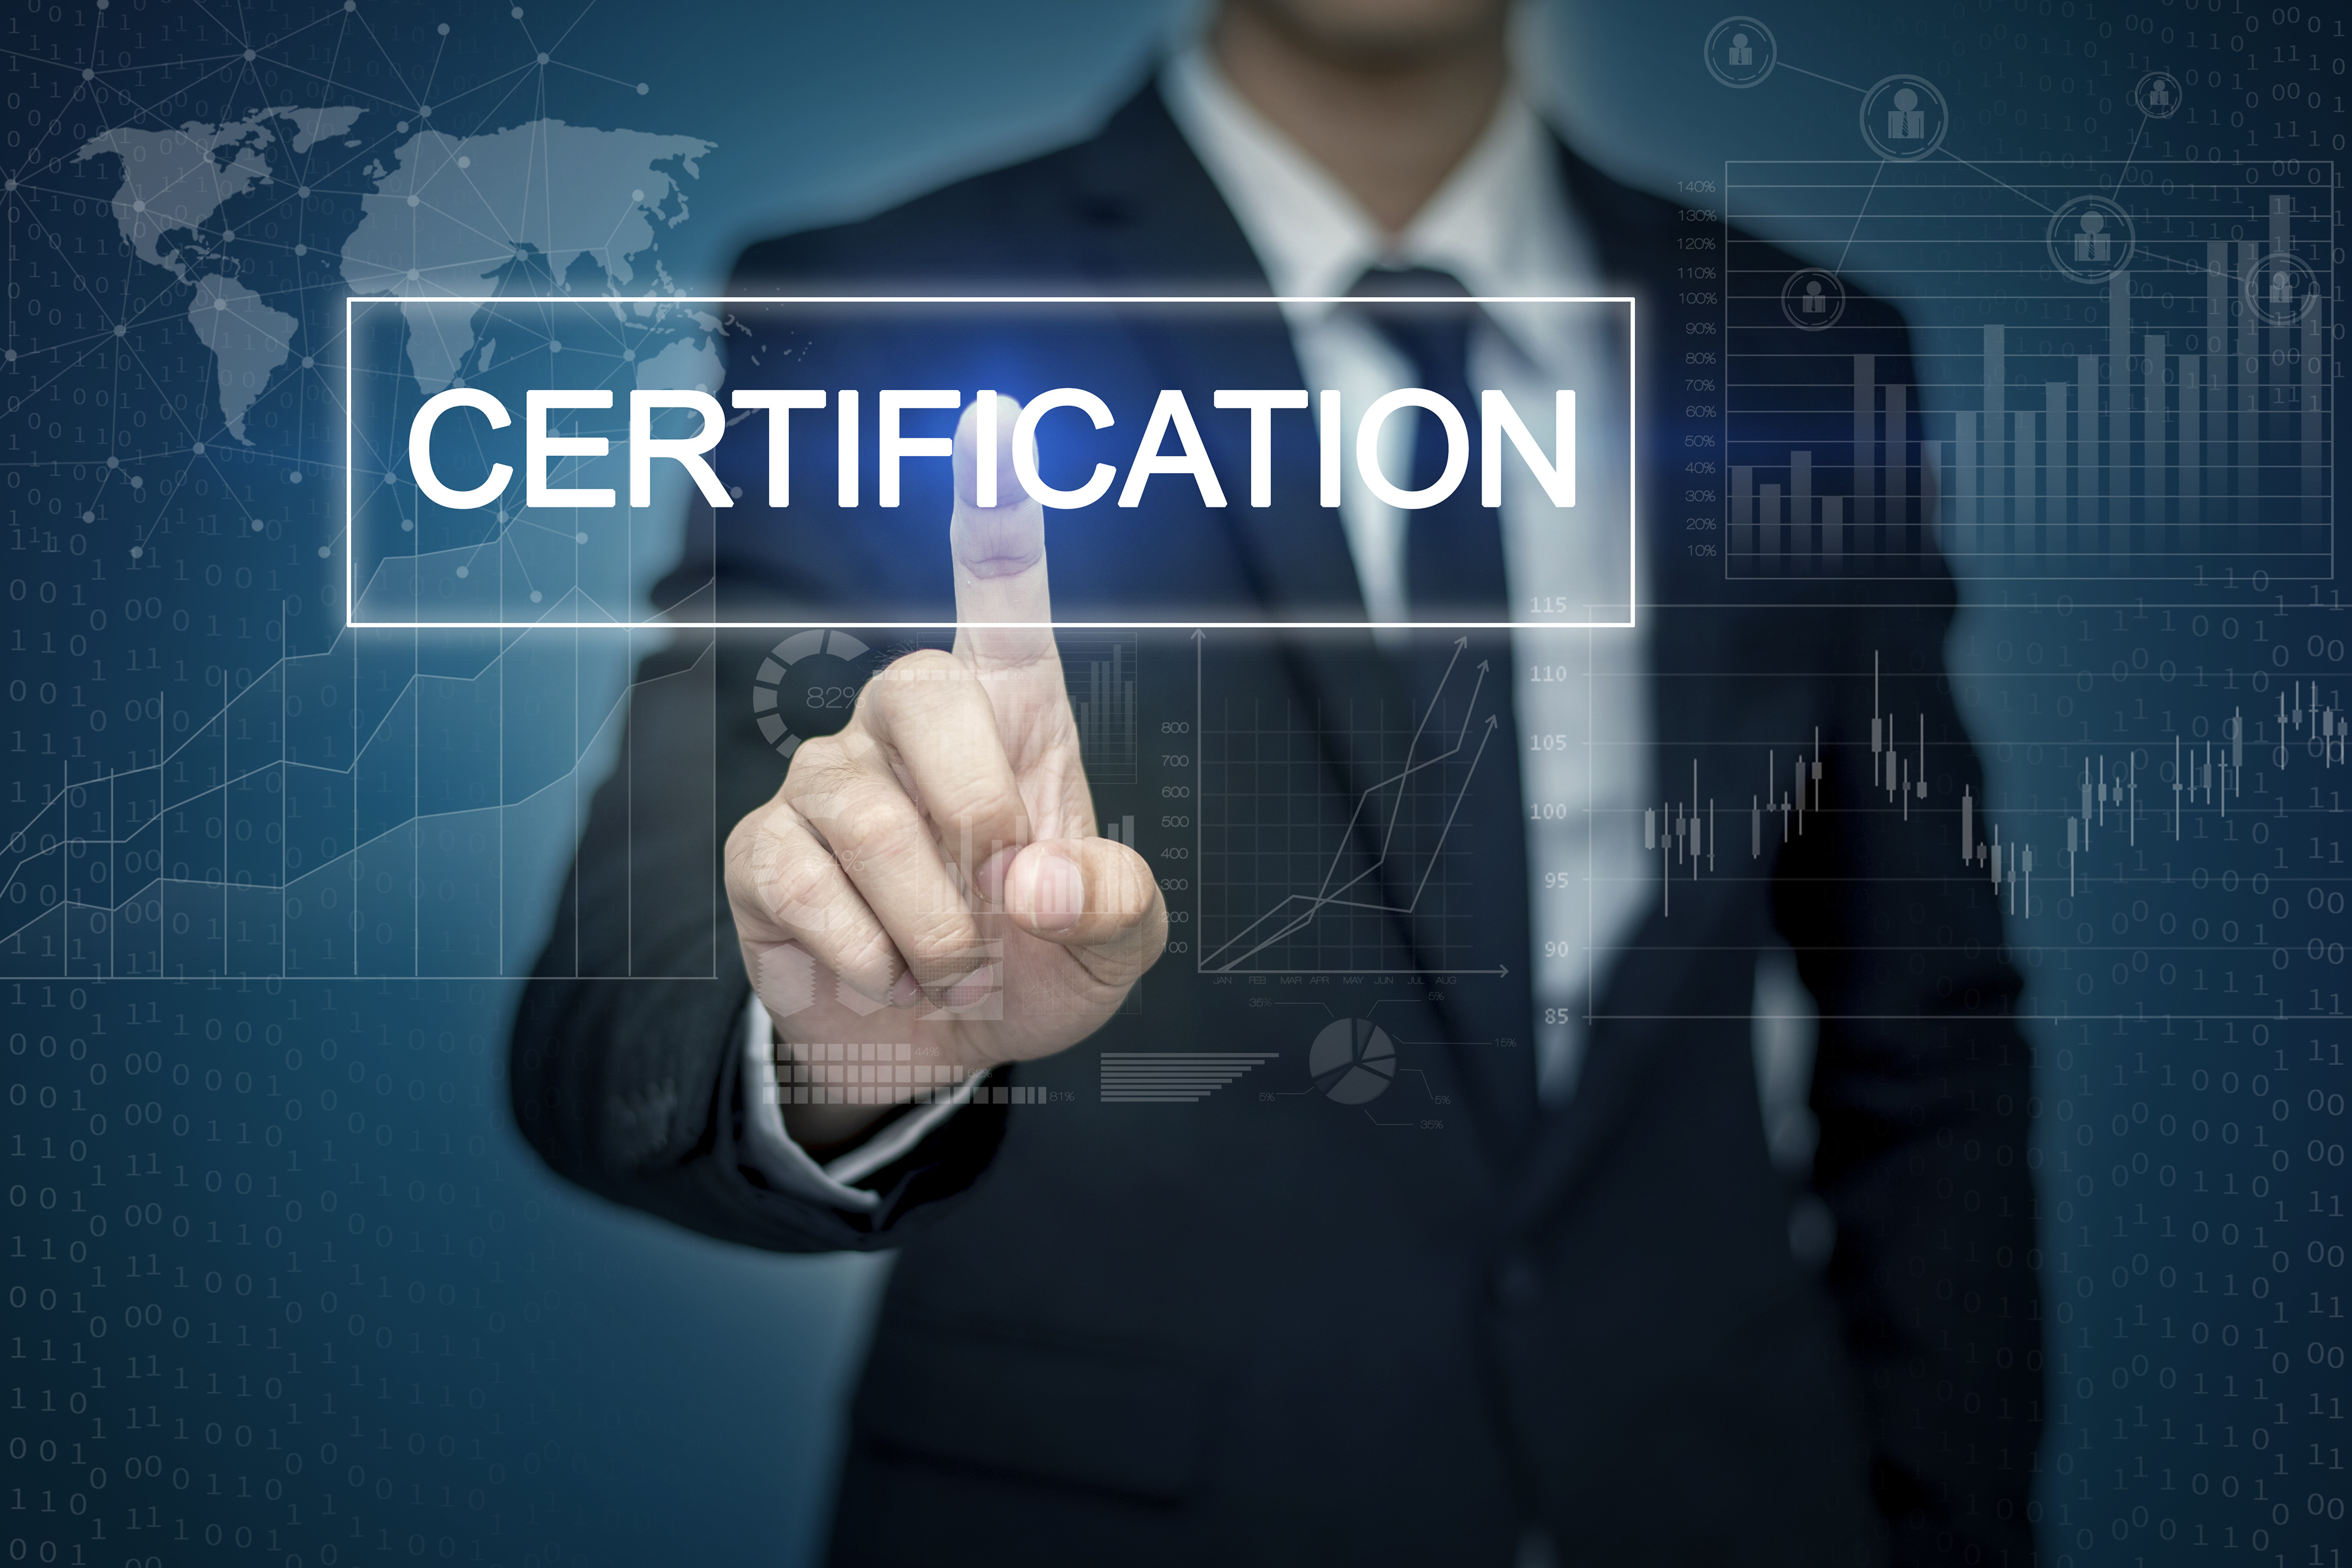 Capacity media global telecoms news events and community the industry associations latest professional certification is the first certification for software defined networking sdn and network functions malvernweather Choice Image